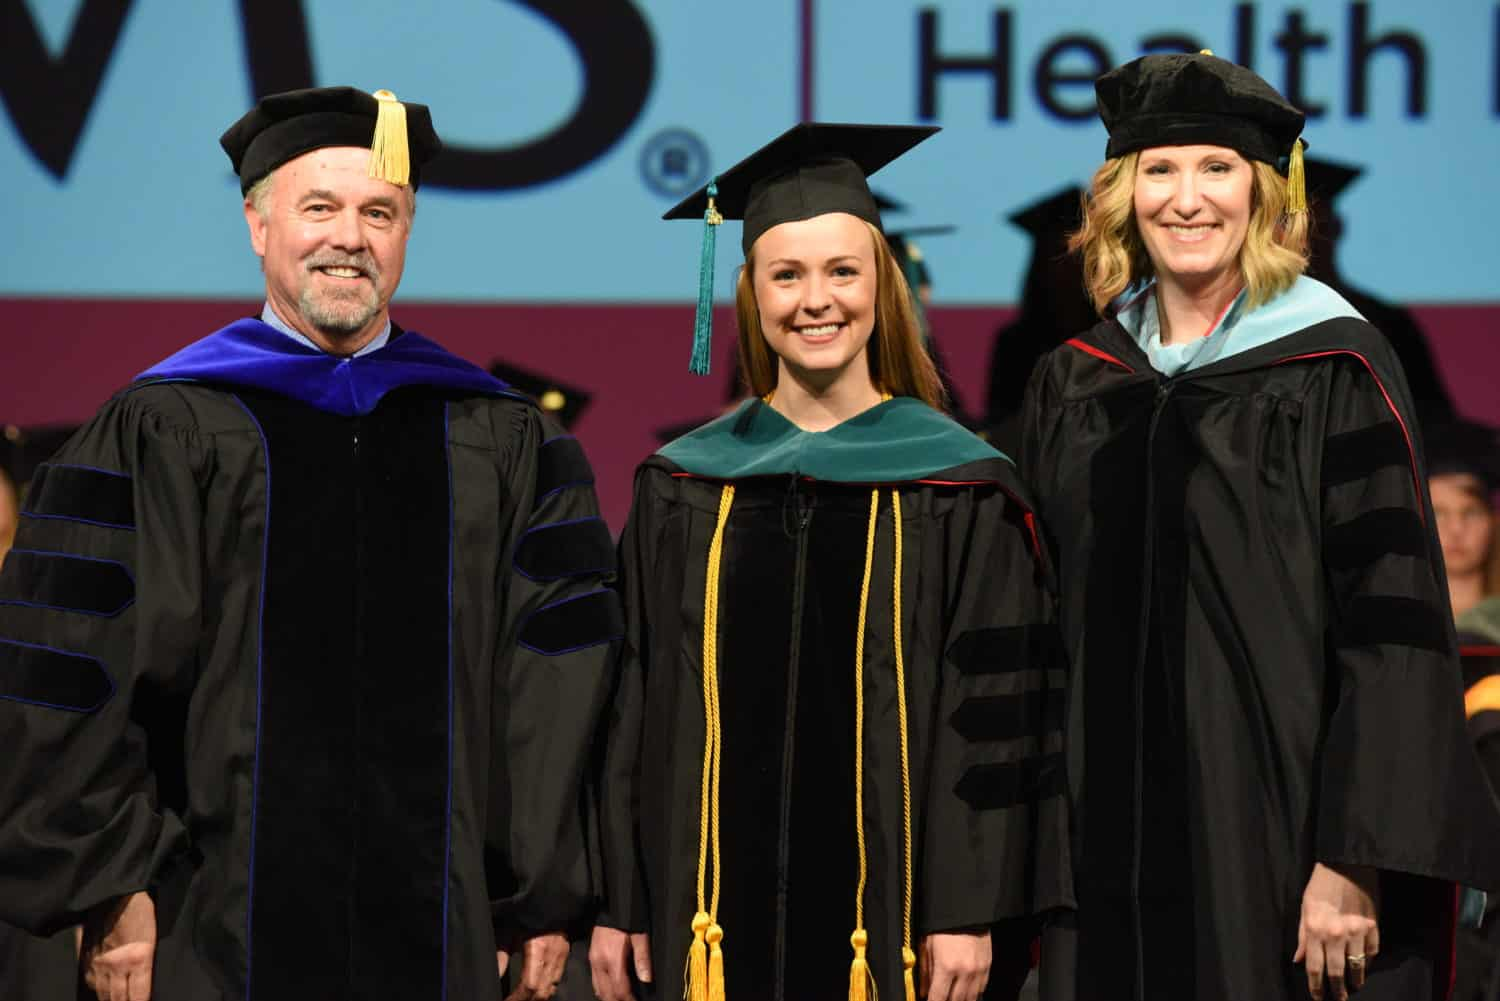 Kayla Copeland (center) is all smiles after receiving her academic hood from John Jefferson, Ph.D., chair of the Department of Physical Therapy, and Angel Holland, Ed.D., assistant professor. Copeland said she got a little teary when she saw her name -- Dr. Kayla Copeland -- on a sign.